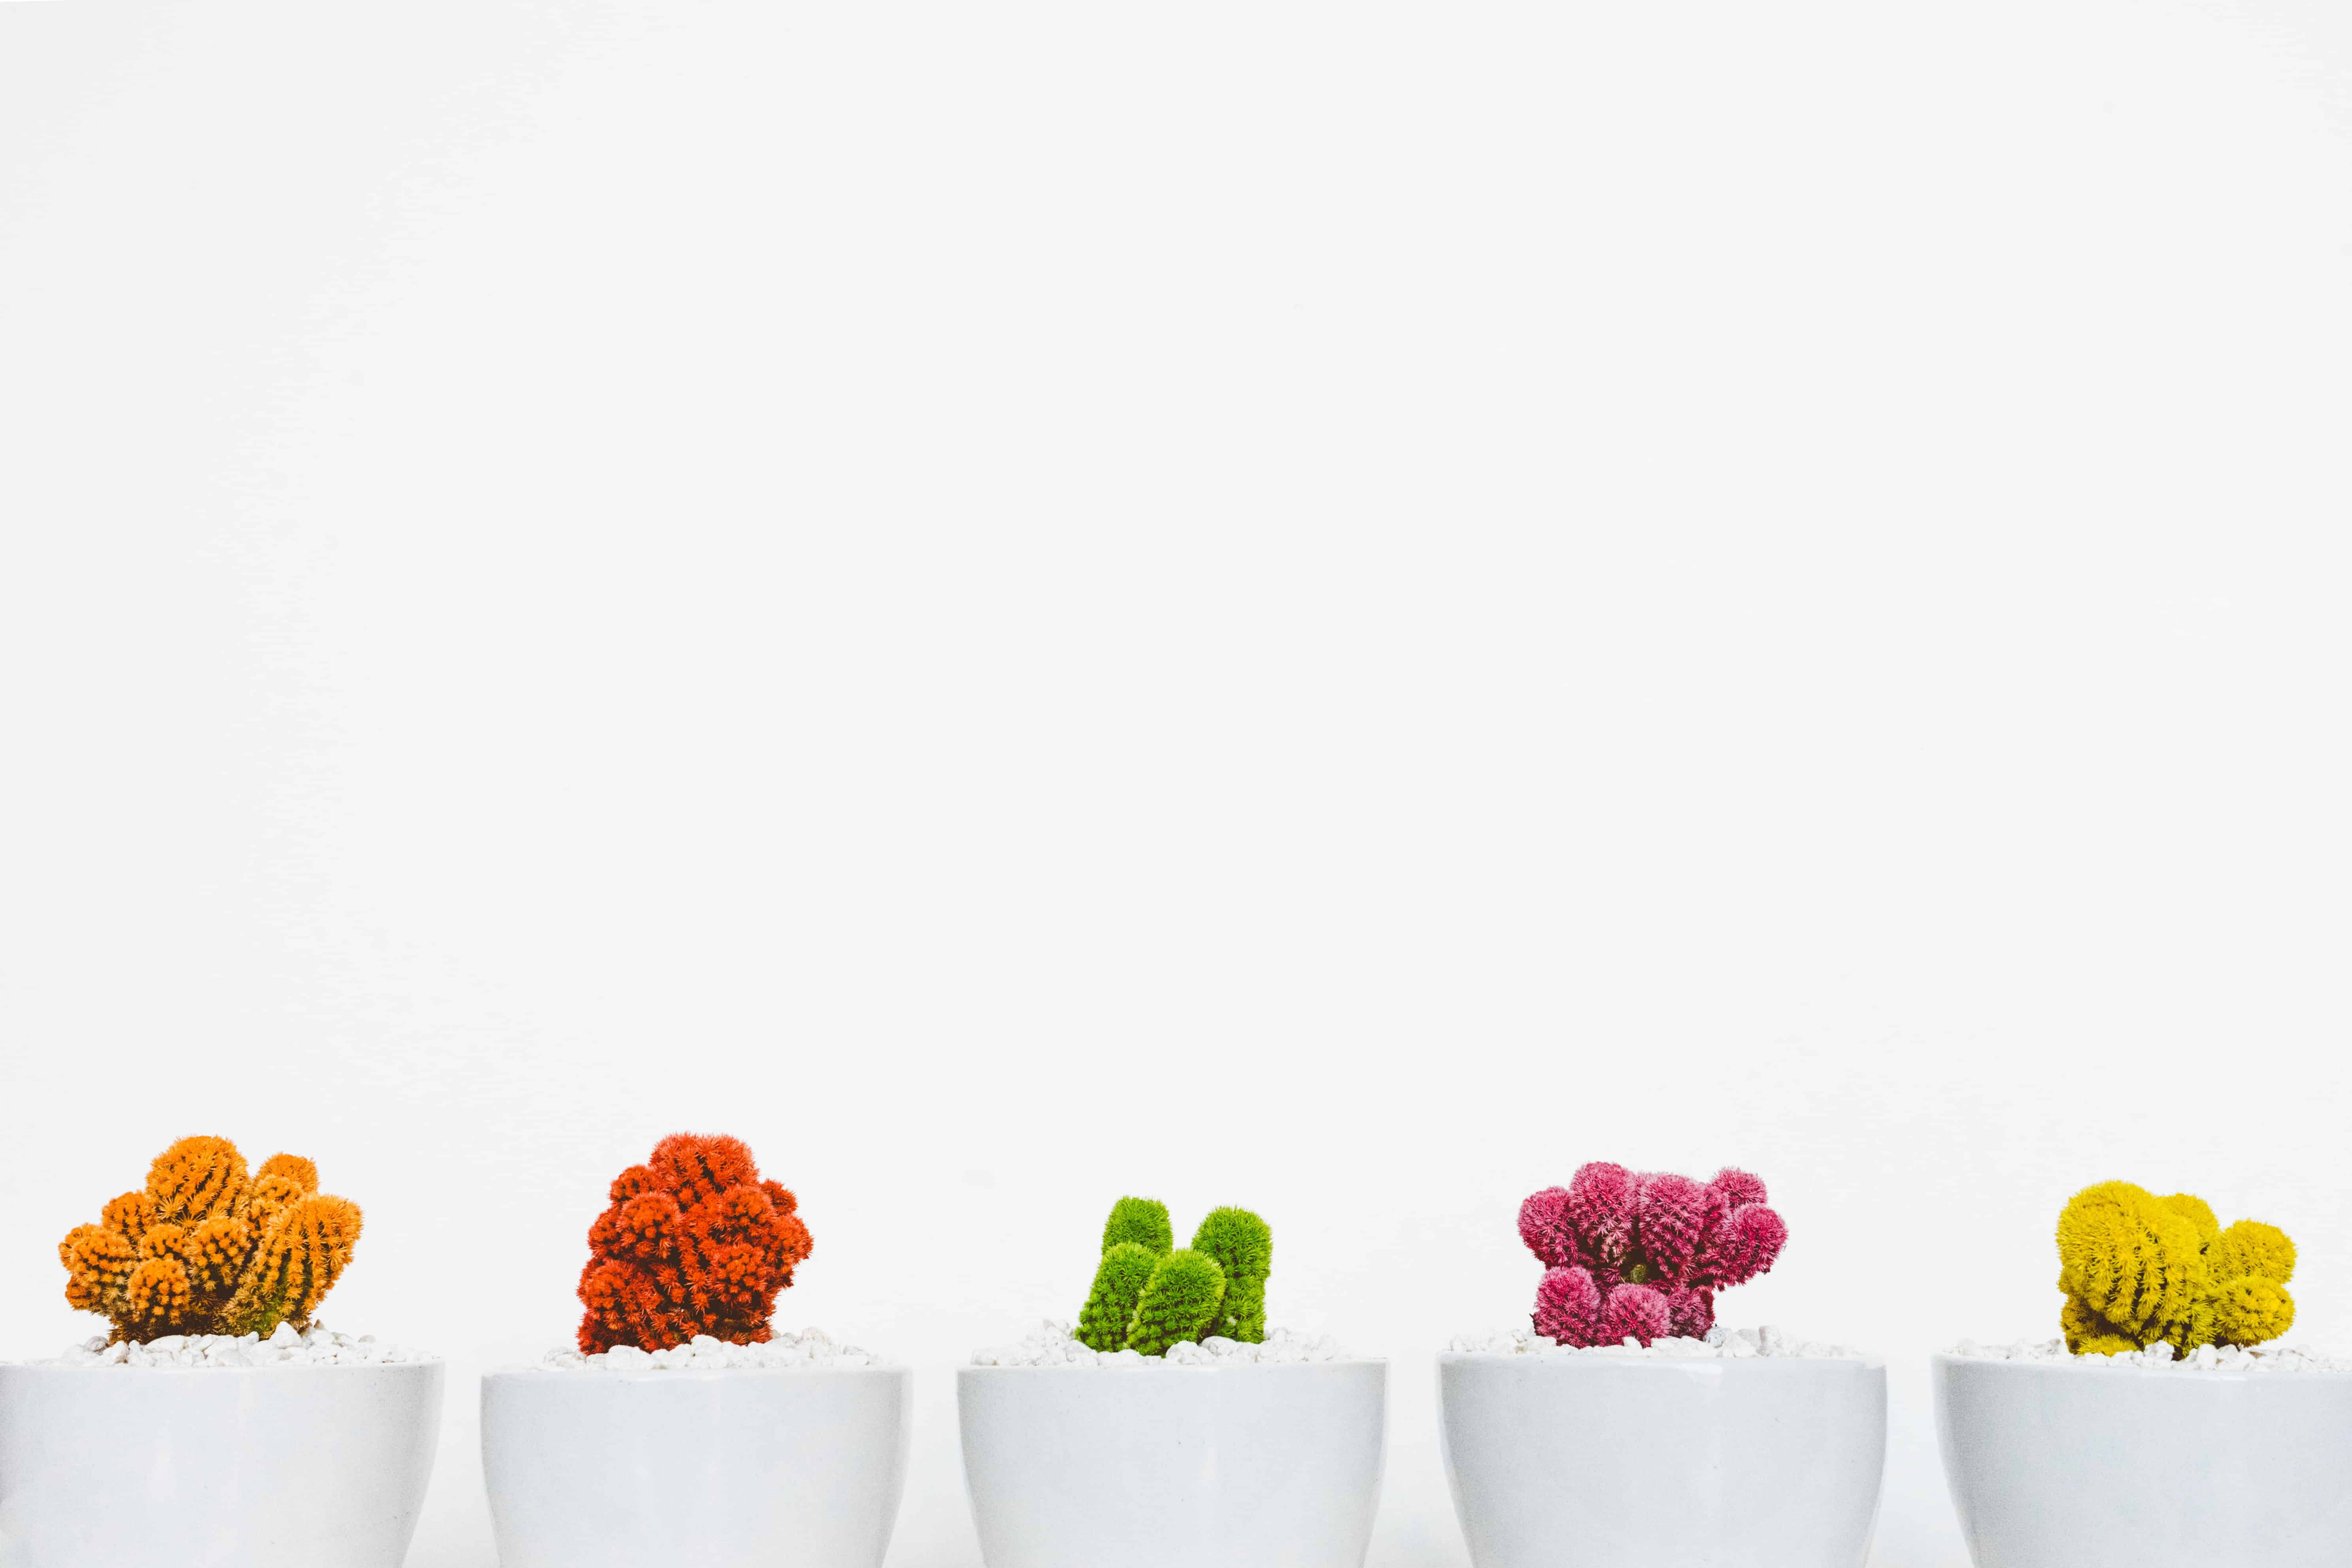 row of cactus plants in various colors